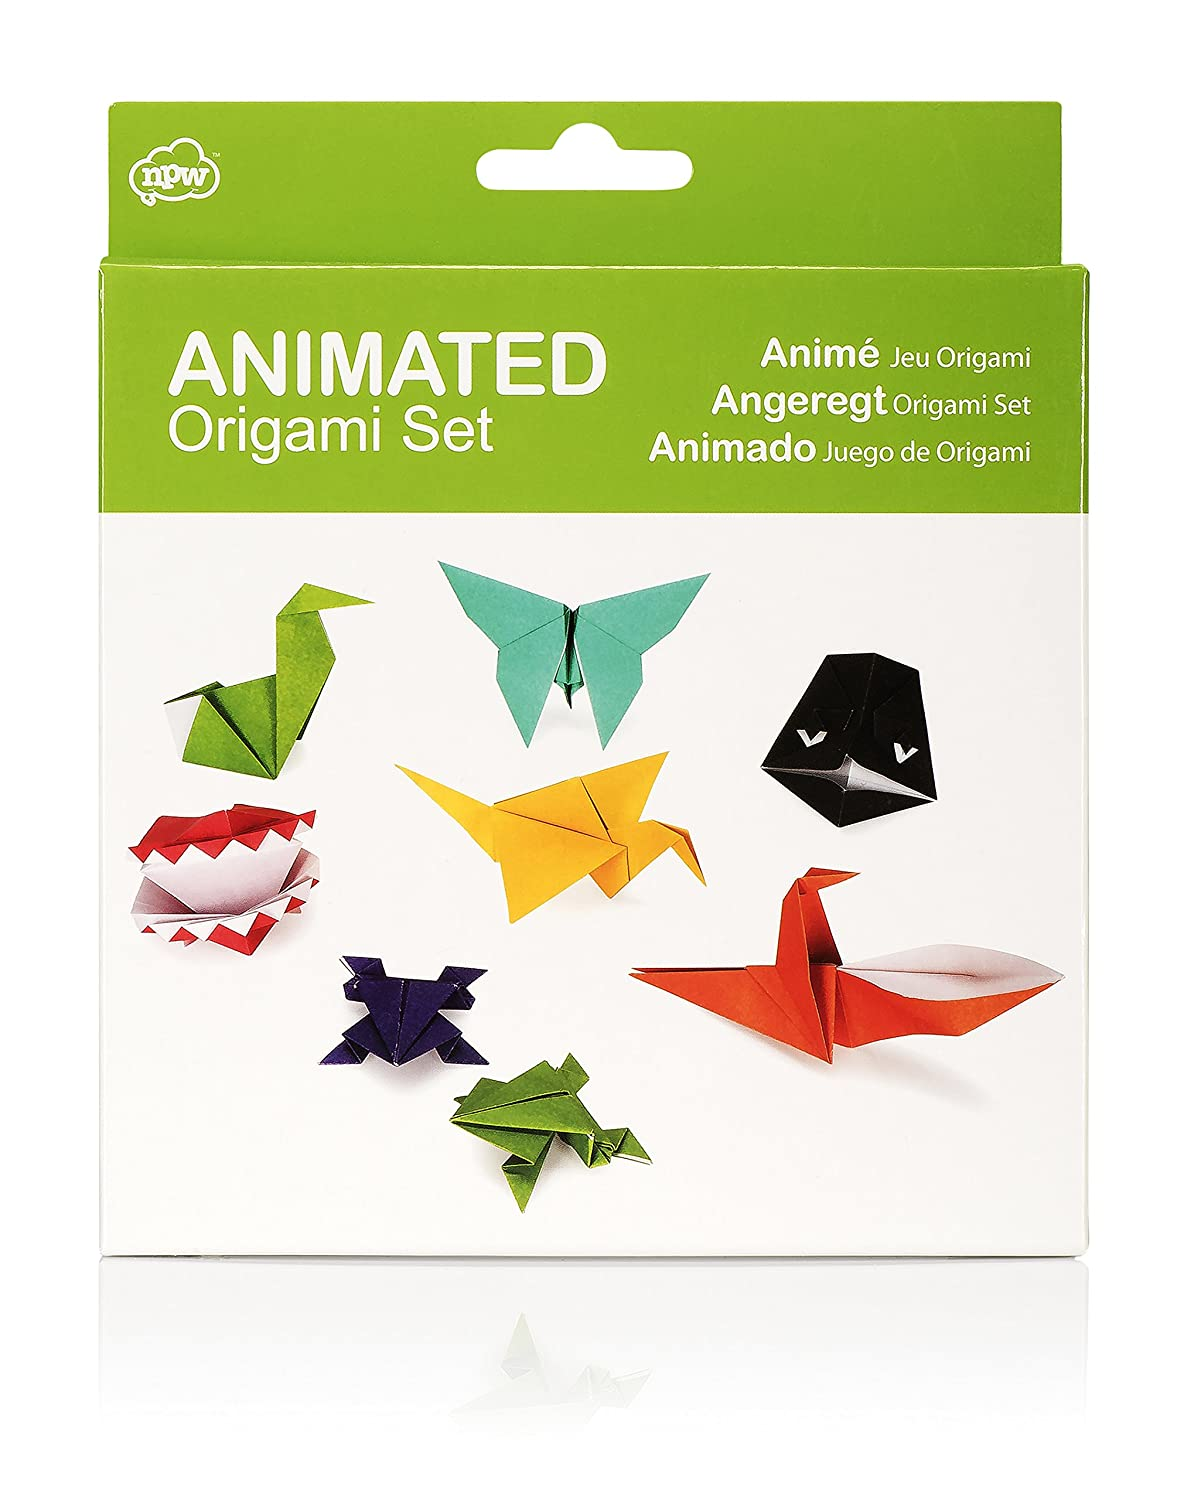 Npw Usa 5 Minute Origami Kit Home Kitchen Mouse Origamiorigami Diagramorigami Instructionsorigami